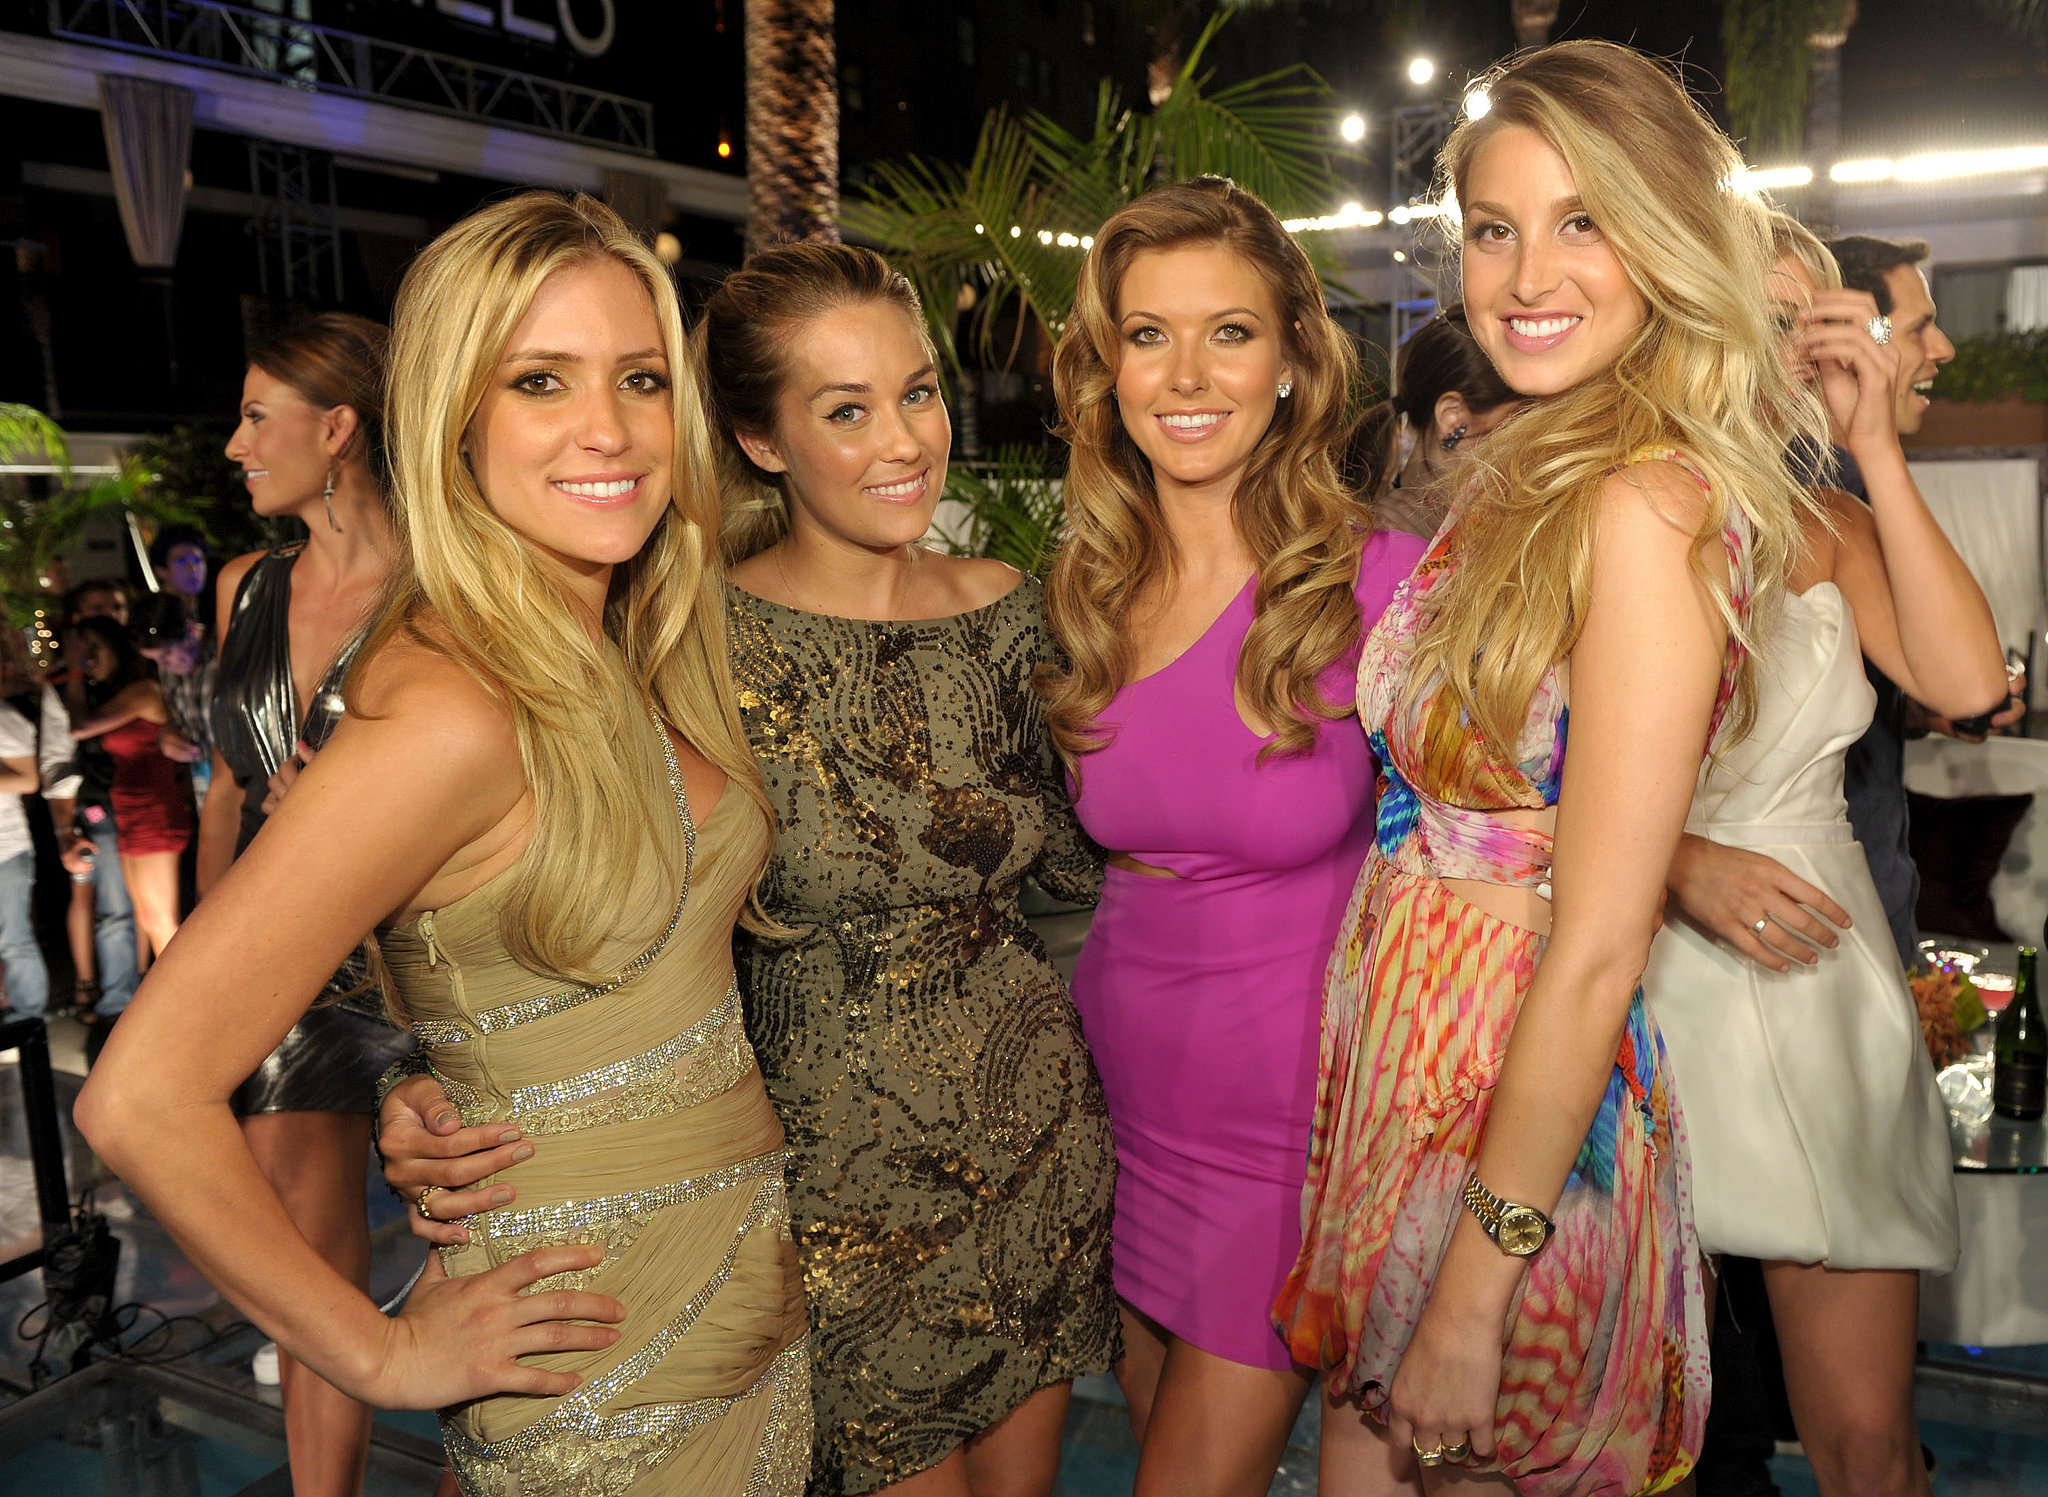 Kristin Cavallari  Whitney Port  Audrina Patridge  and Lauren Conrad    Lauren Conrad And Kristin Cavallari 2013